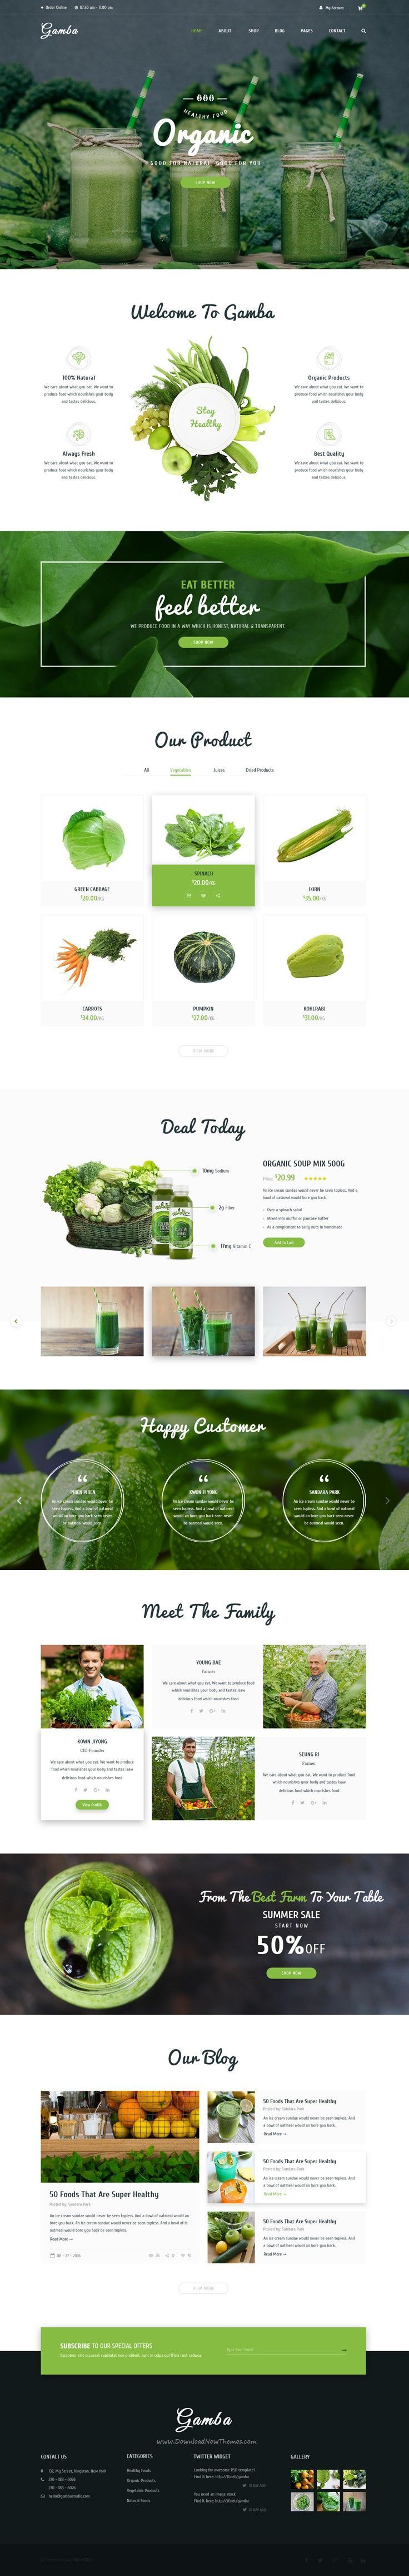 Gamba is a powerful, modern and creative  Latest News & Trends on #webdesign   http://webworksagency.com